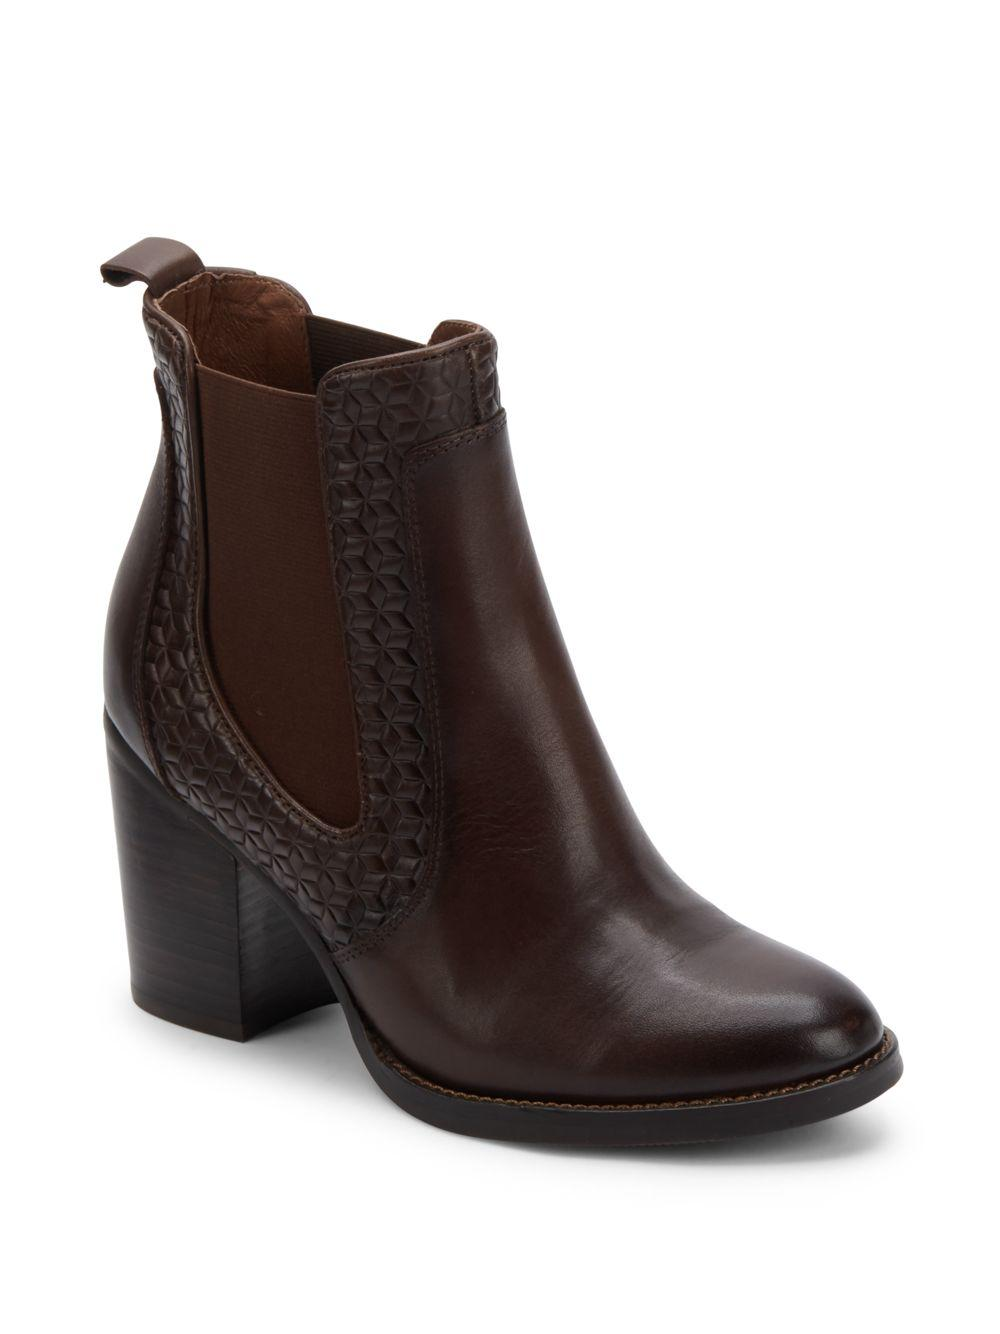 liebeskind round toe chelsea boots in brown lyst. Black Bedroom Furniture Sets. Home Design Ideas